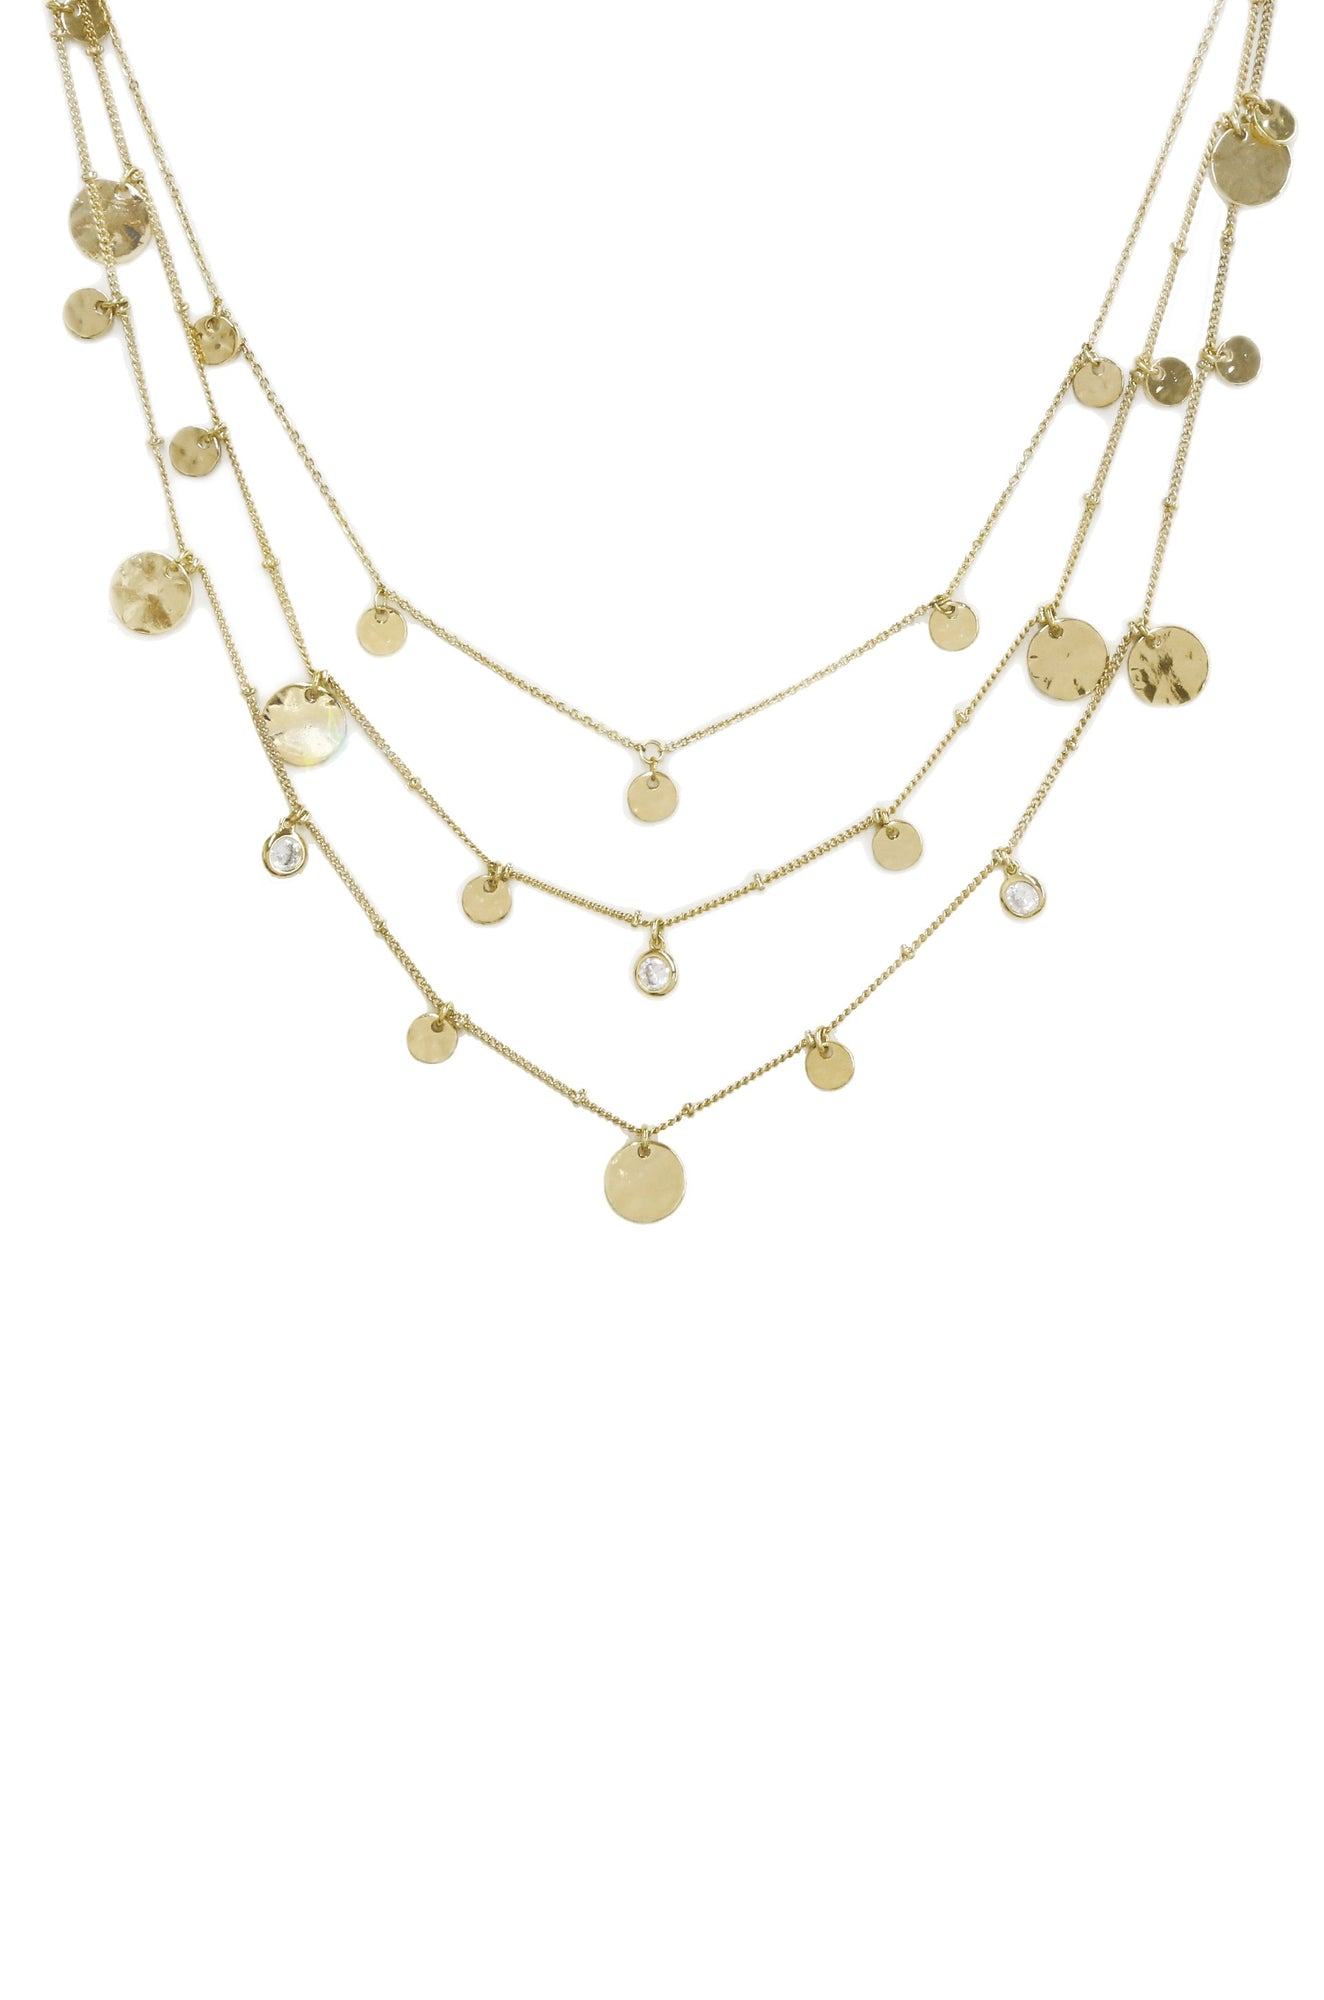 32c8335b5 All in Layered Crystal & 18kt Gold Plated Necklace Set. All in Layered  Crystal & 18kt Gold Plated Necklace Set